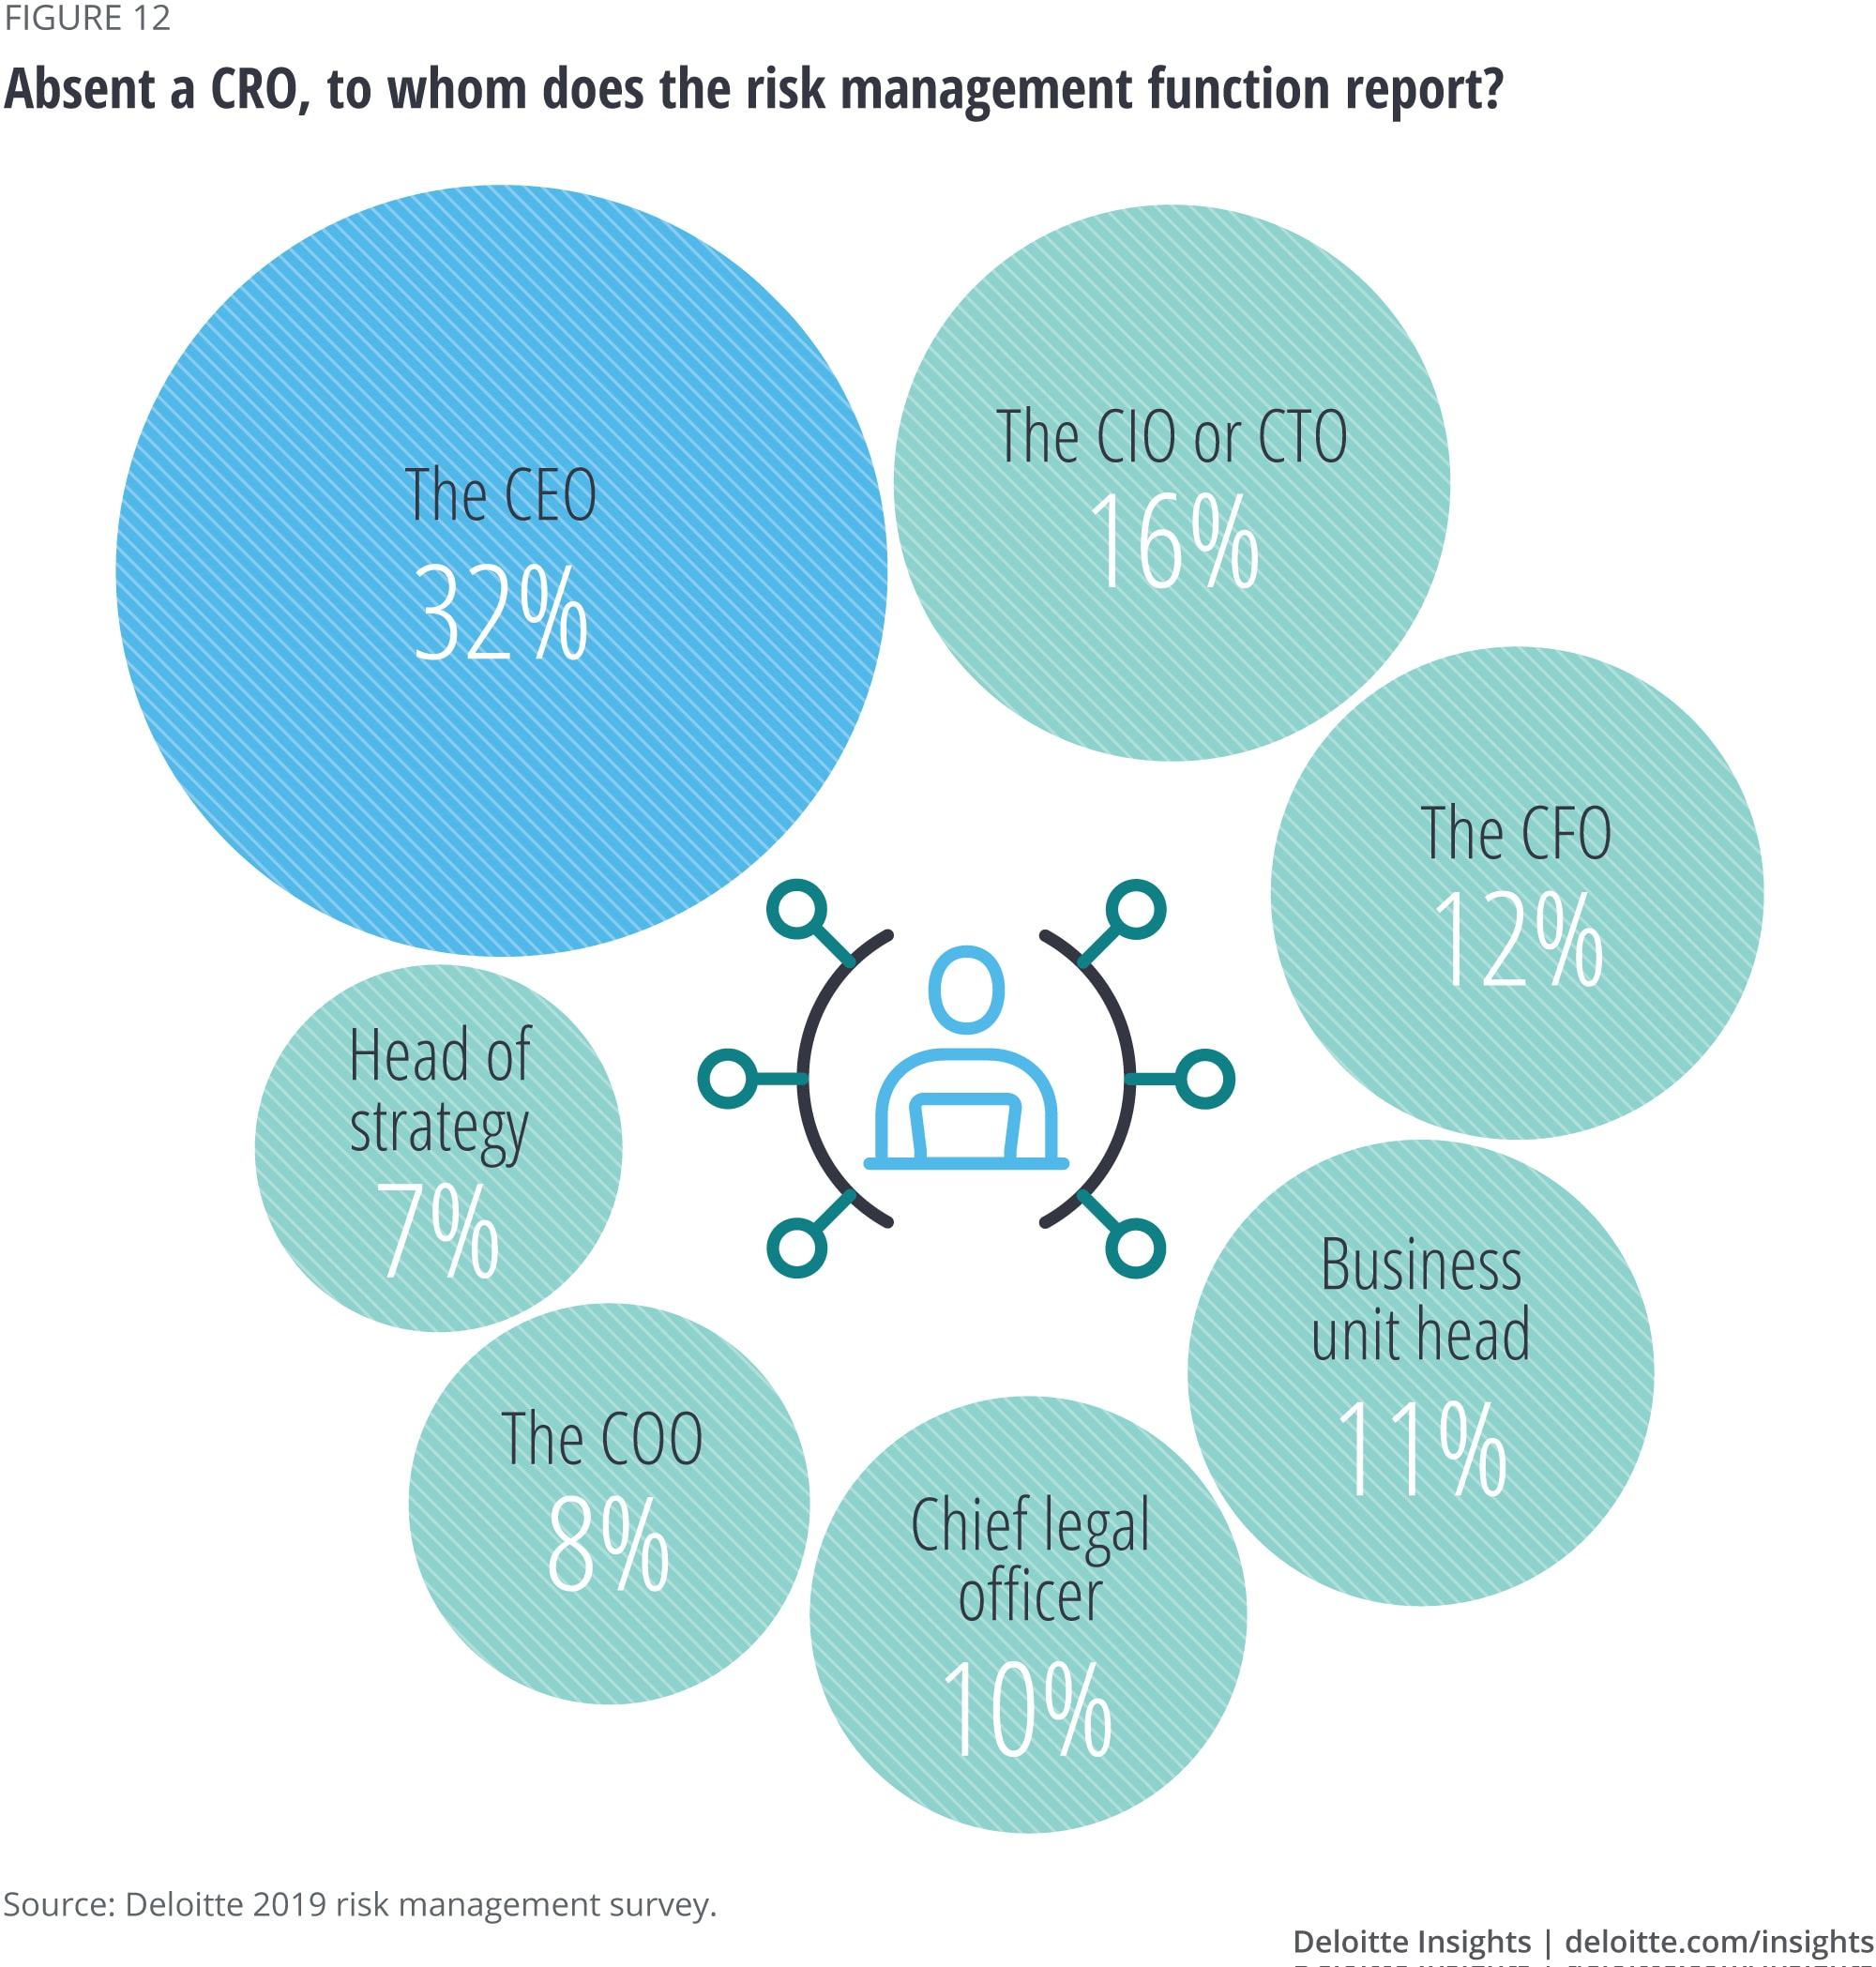 Absent a CRO, to whom does the risk management function report?